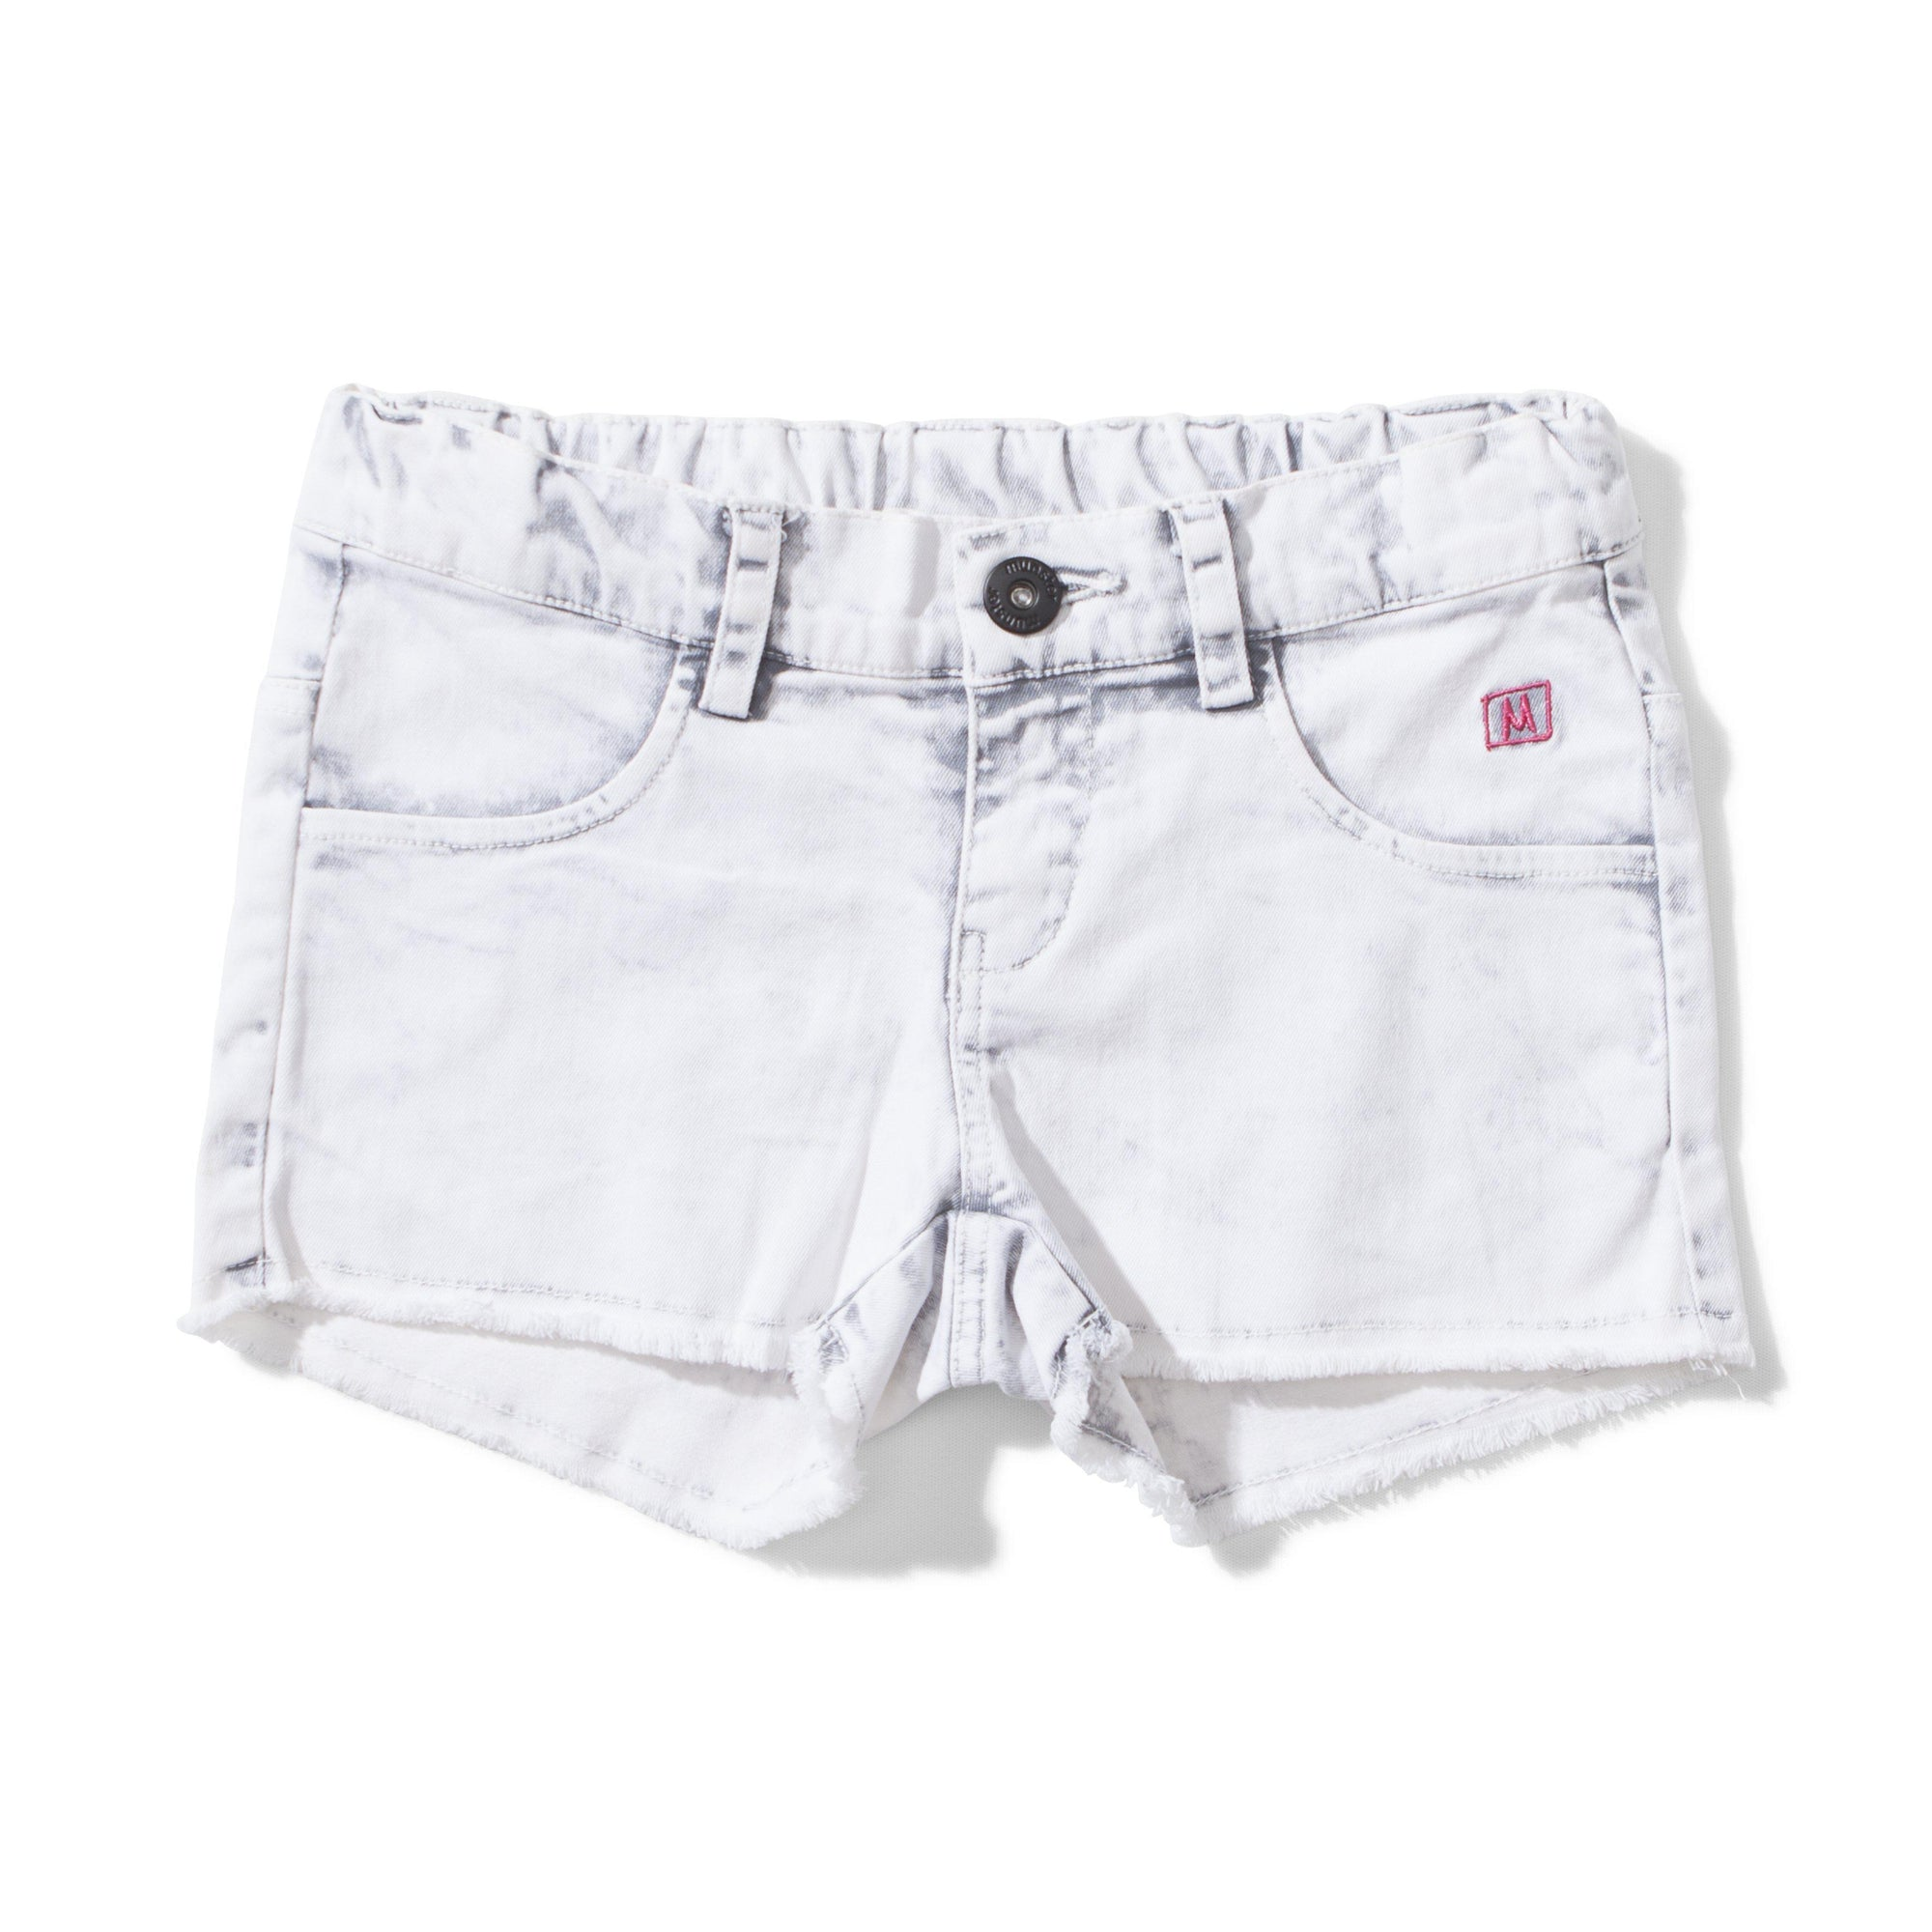 Splendour Denim Shorts